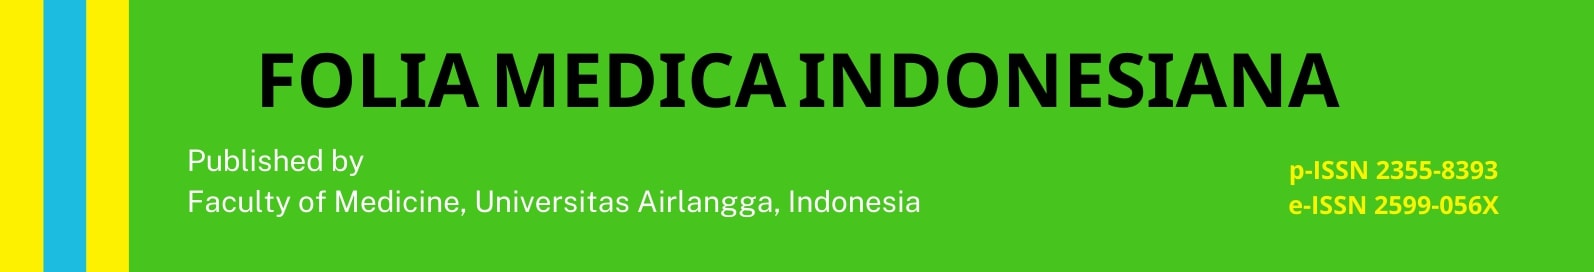 Folia Medica Indonesia